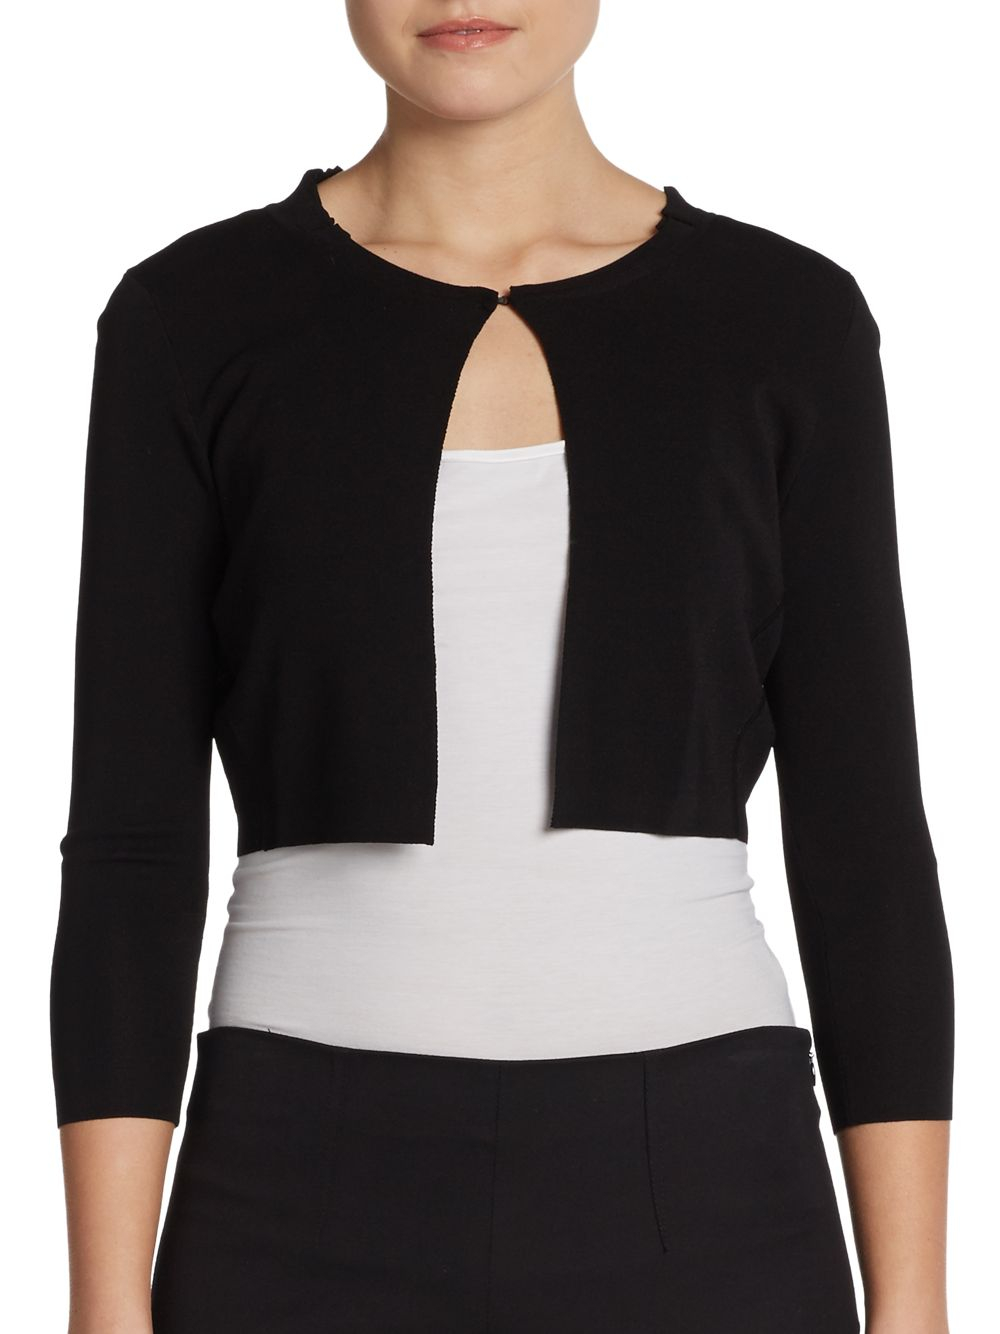 Elie tahari Minnie Cropped Bolero Cardigan in Black | Lyst